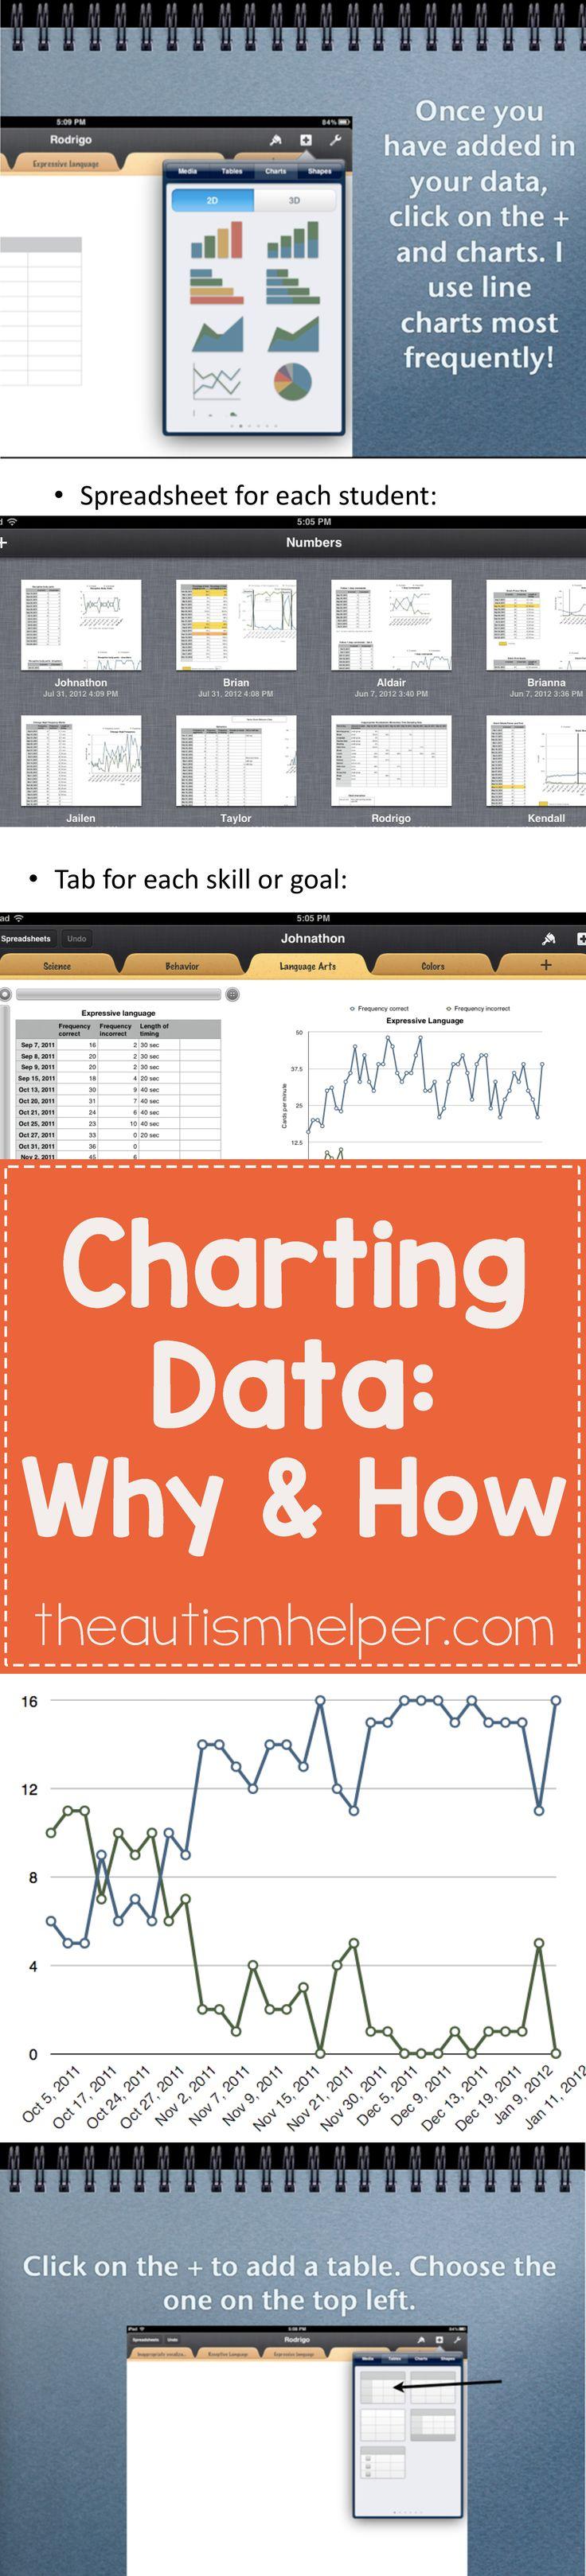 The secrets & importance of charting data in your classroom from theautismhelper.com!